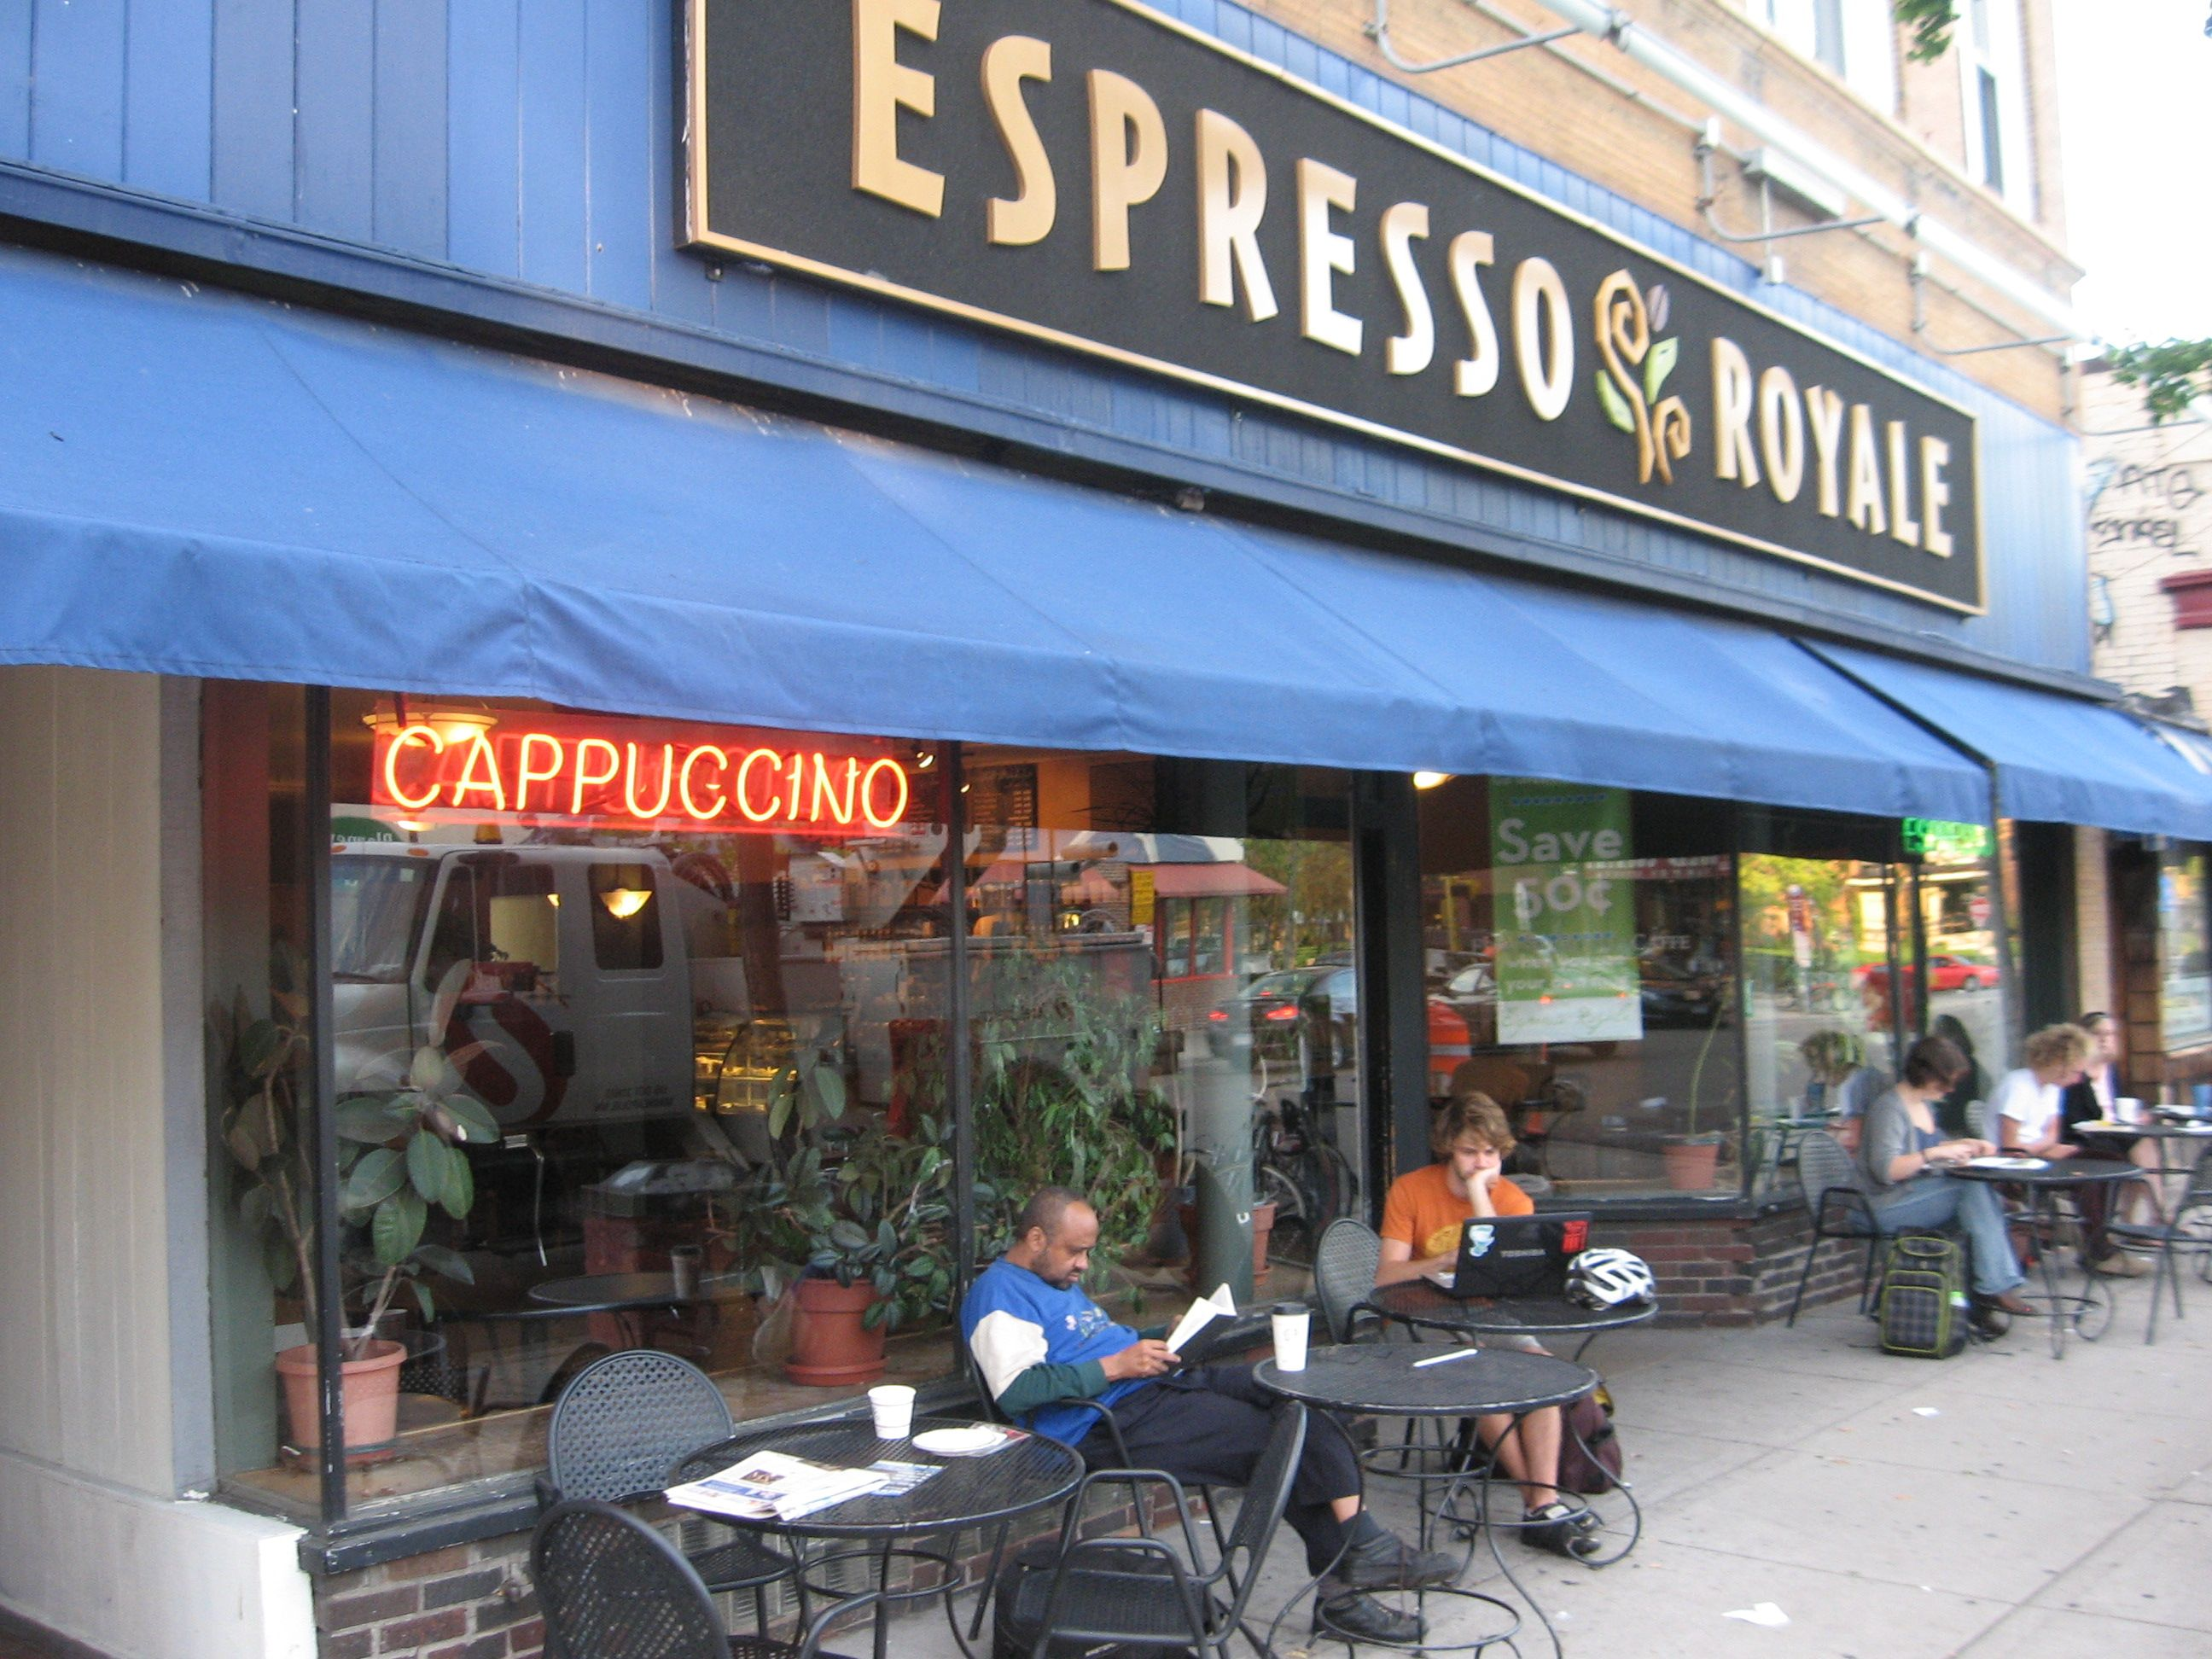 espresso royale cafe in dinkytown minneapolis for about two espresso royale cafe in dinkytown minneapolis for about two years in college at the